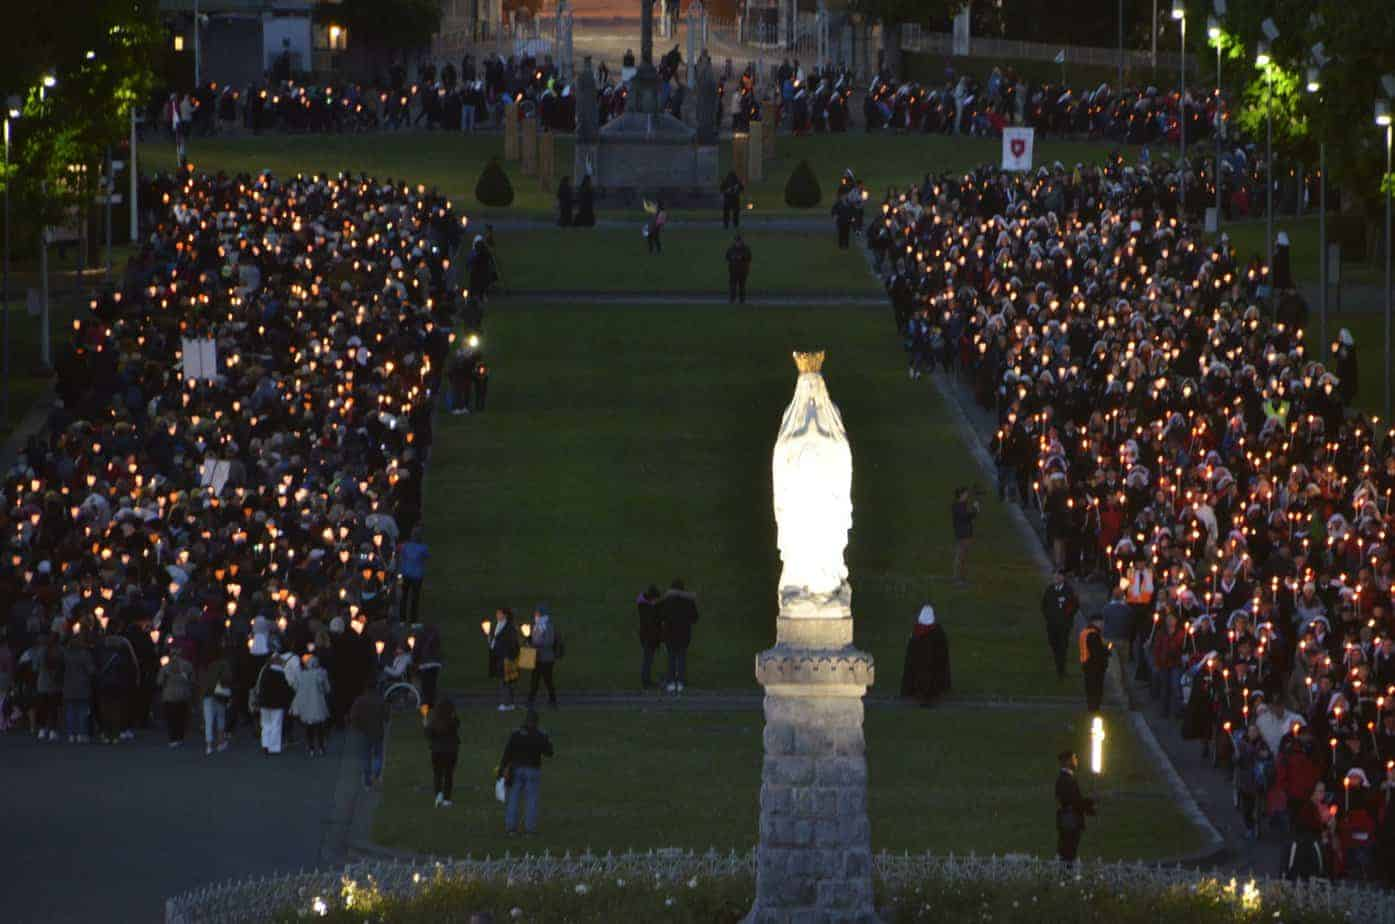 , Lourdes, France: Our Lady of Lourdes, Site of Healing and Hope